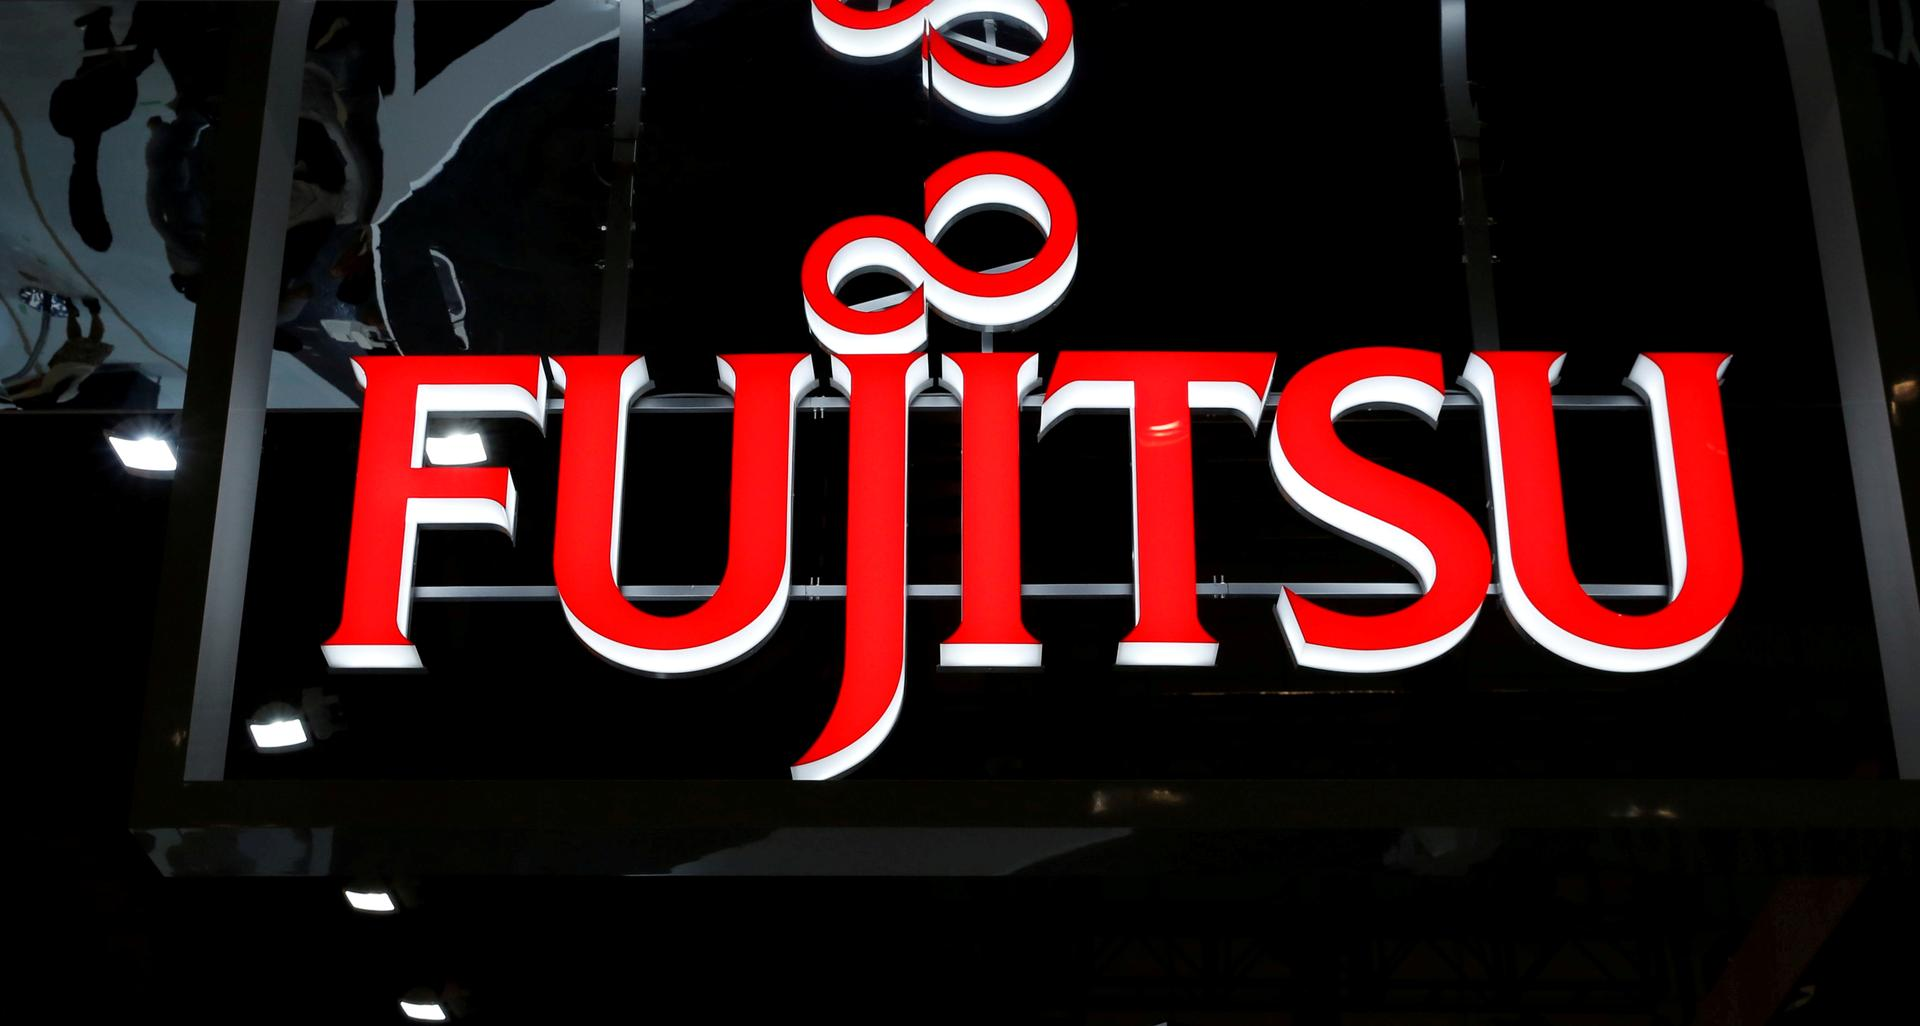 Fujitsu to halve office space in three years citing 'new normal'